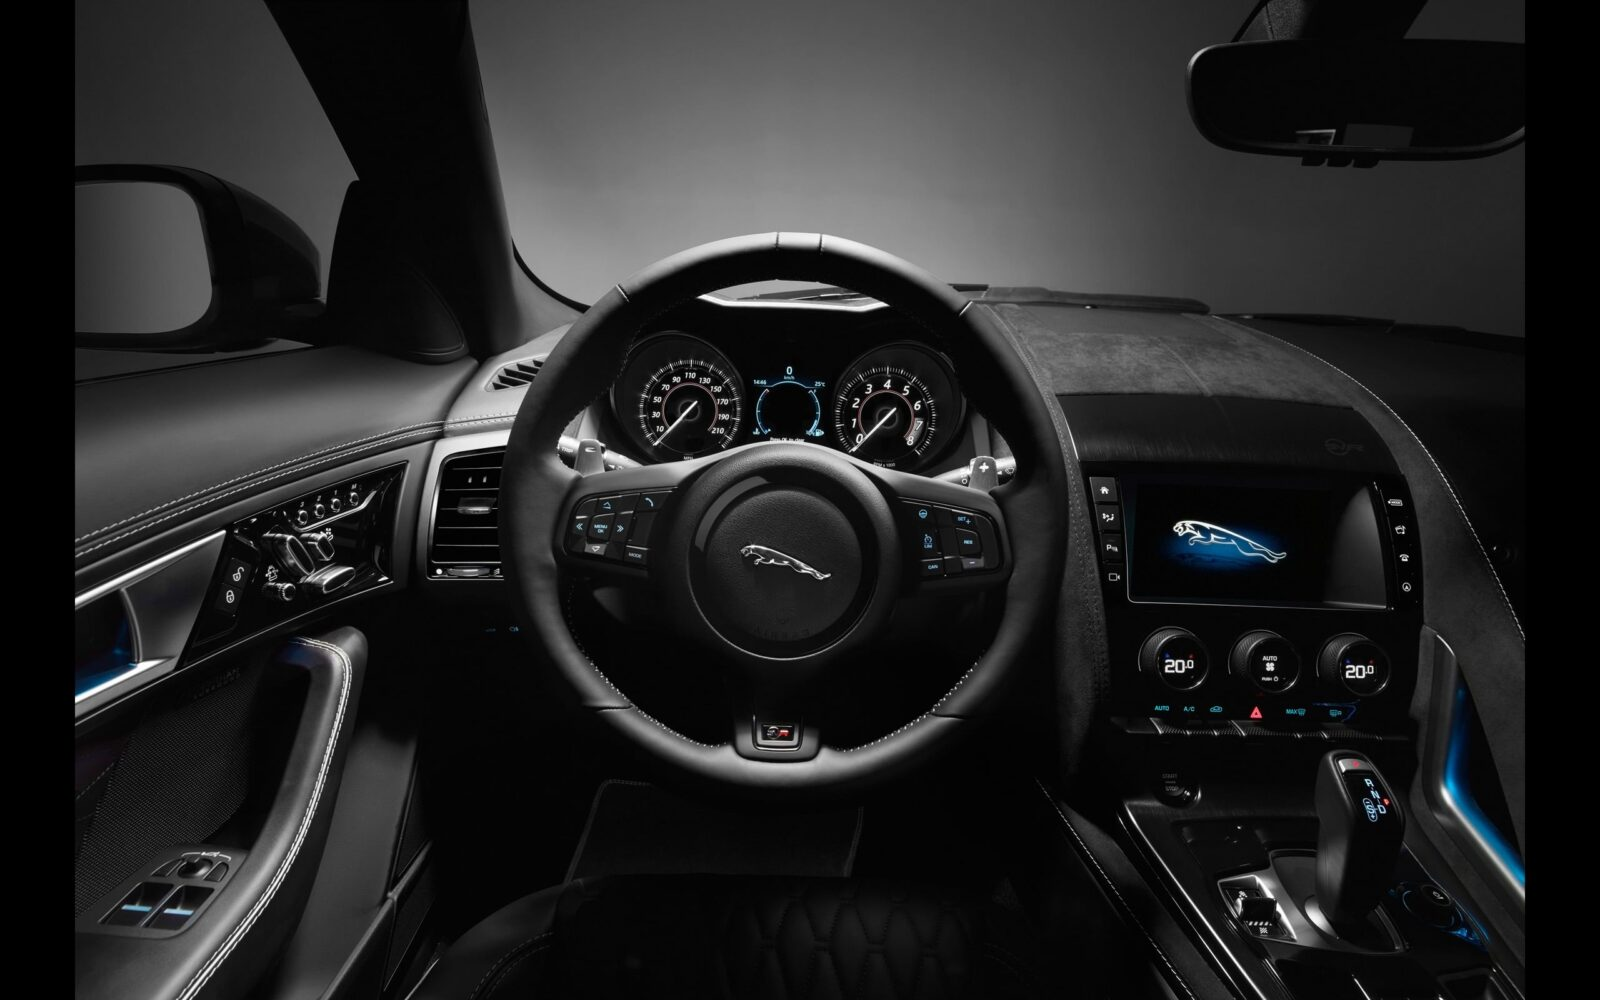 2017 Jaguar F Type SVR Convertible interior 1920x1080 wallpaper